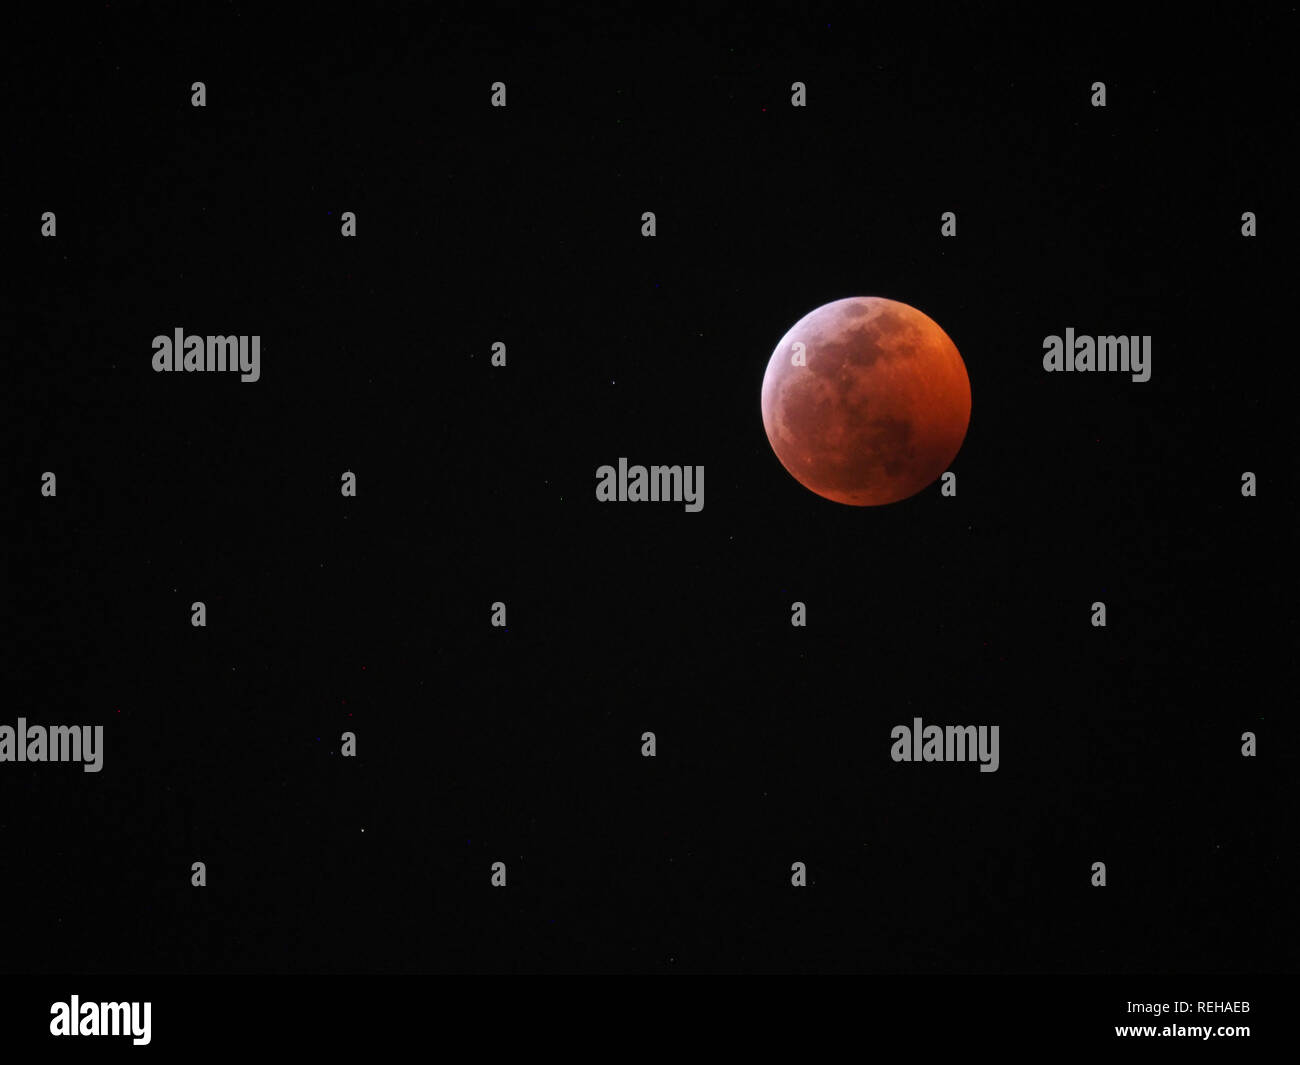 super wolf blood moon of Jan 20th, 2019 - Stock Image